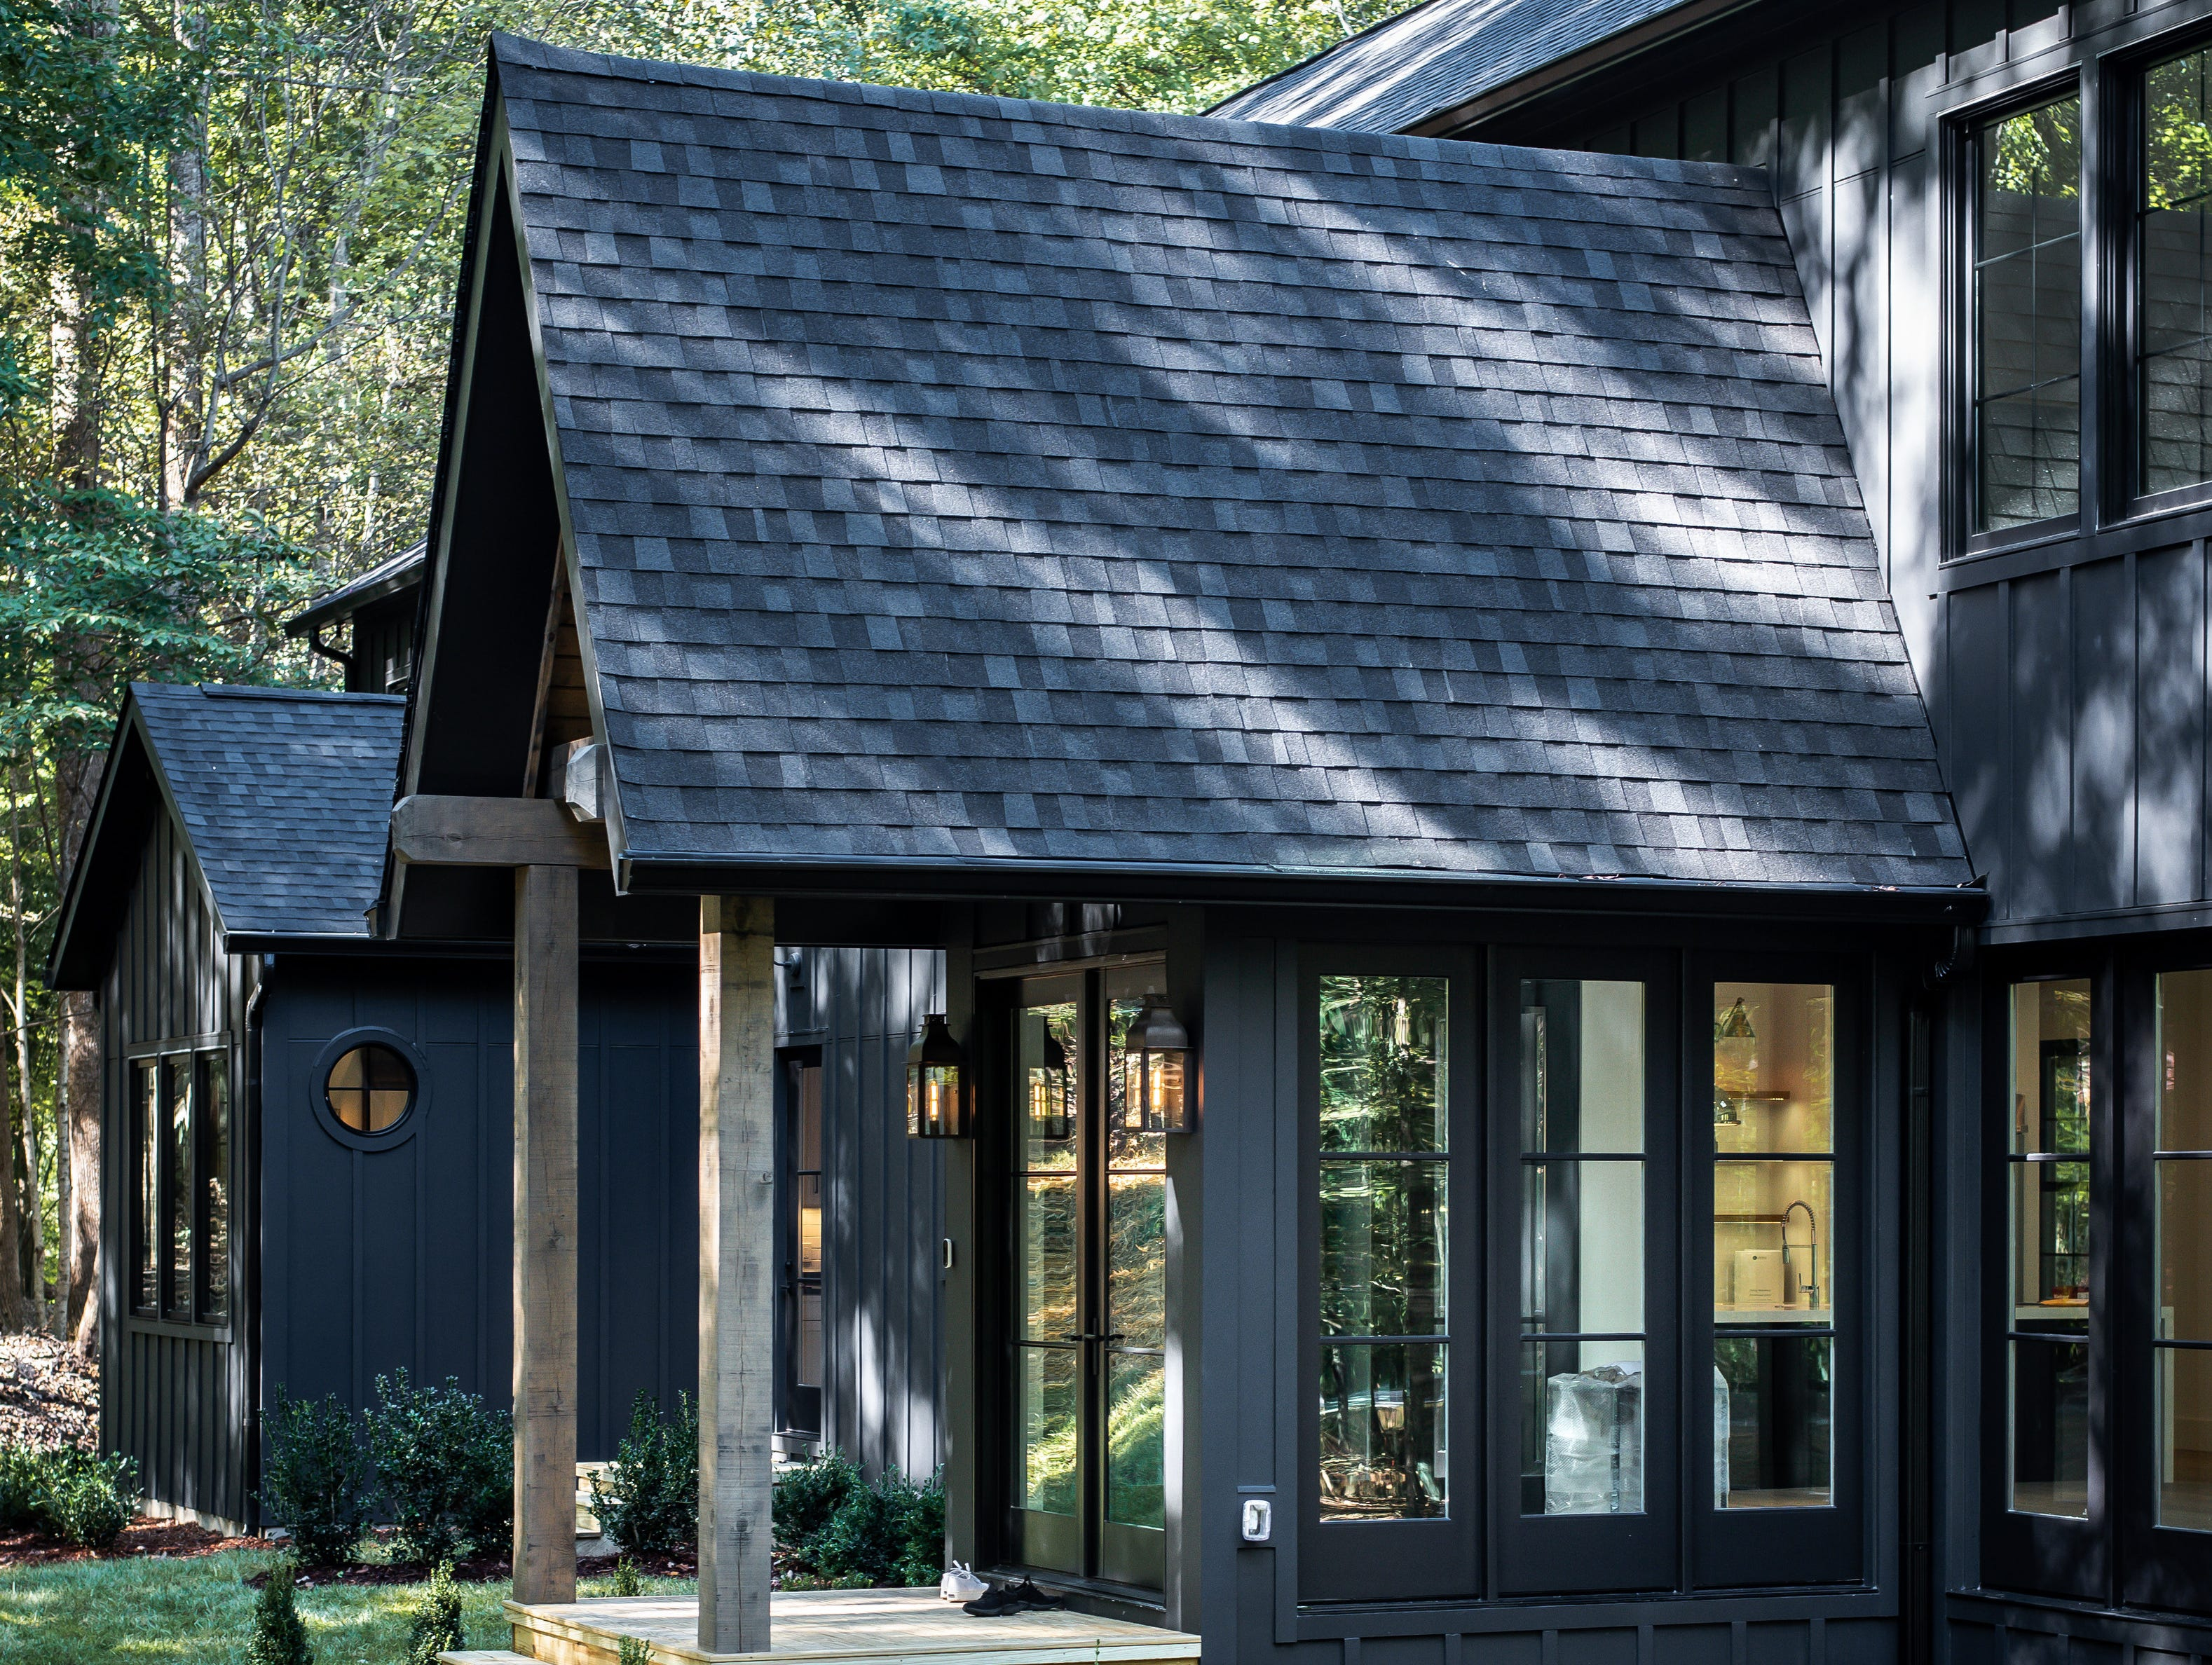 This view of the home's exterior shows how the wooded lot and shadows that are cast across the home create a very inviting and rustic setting to the home.